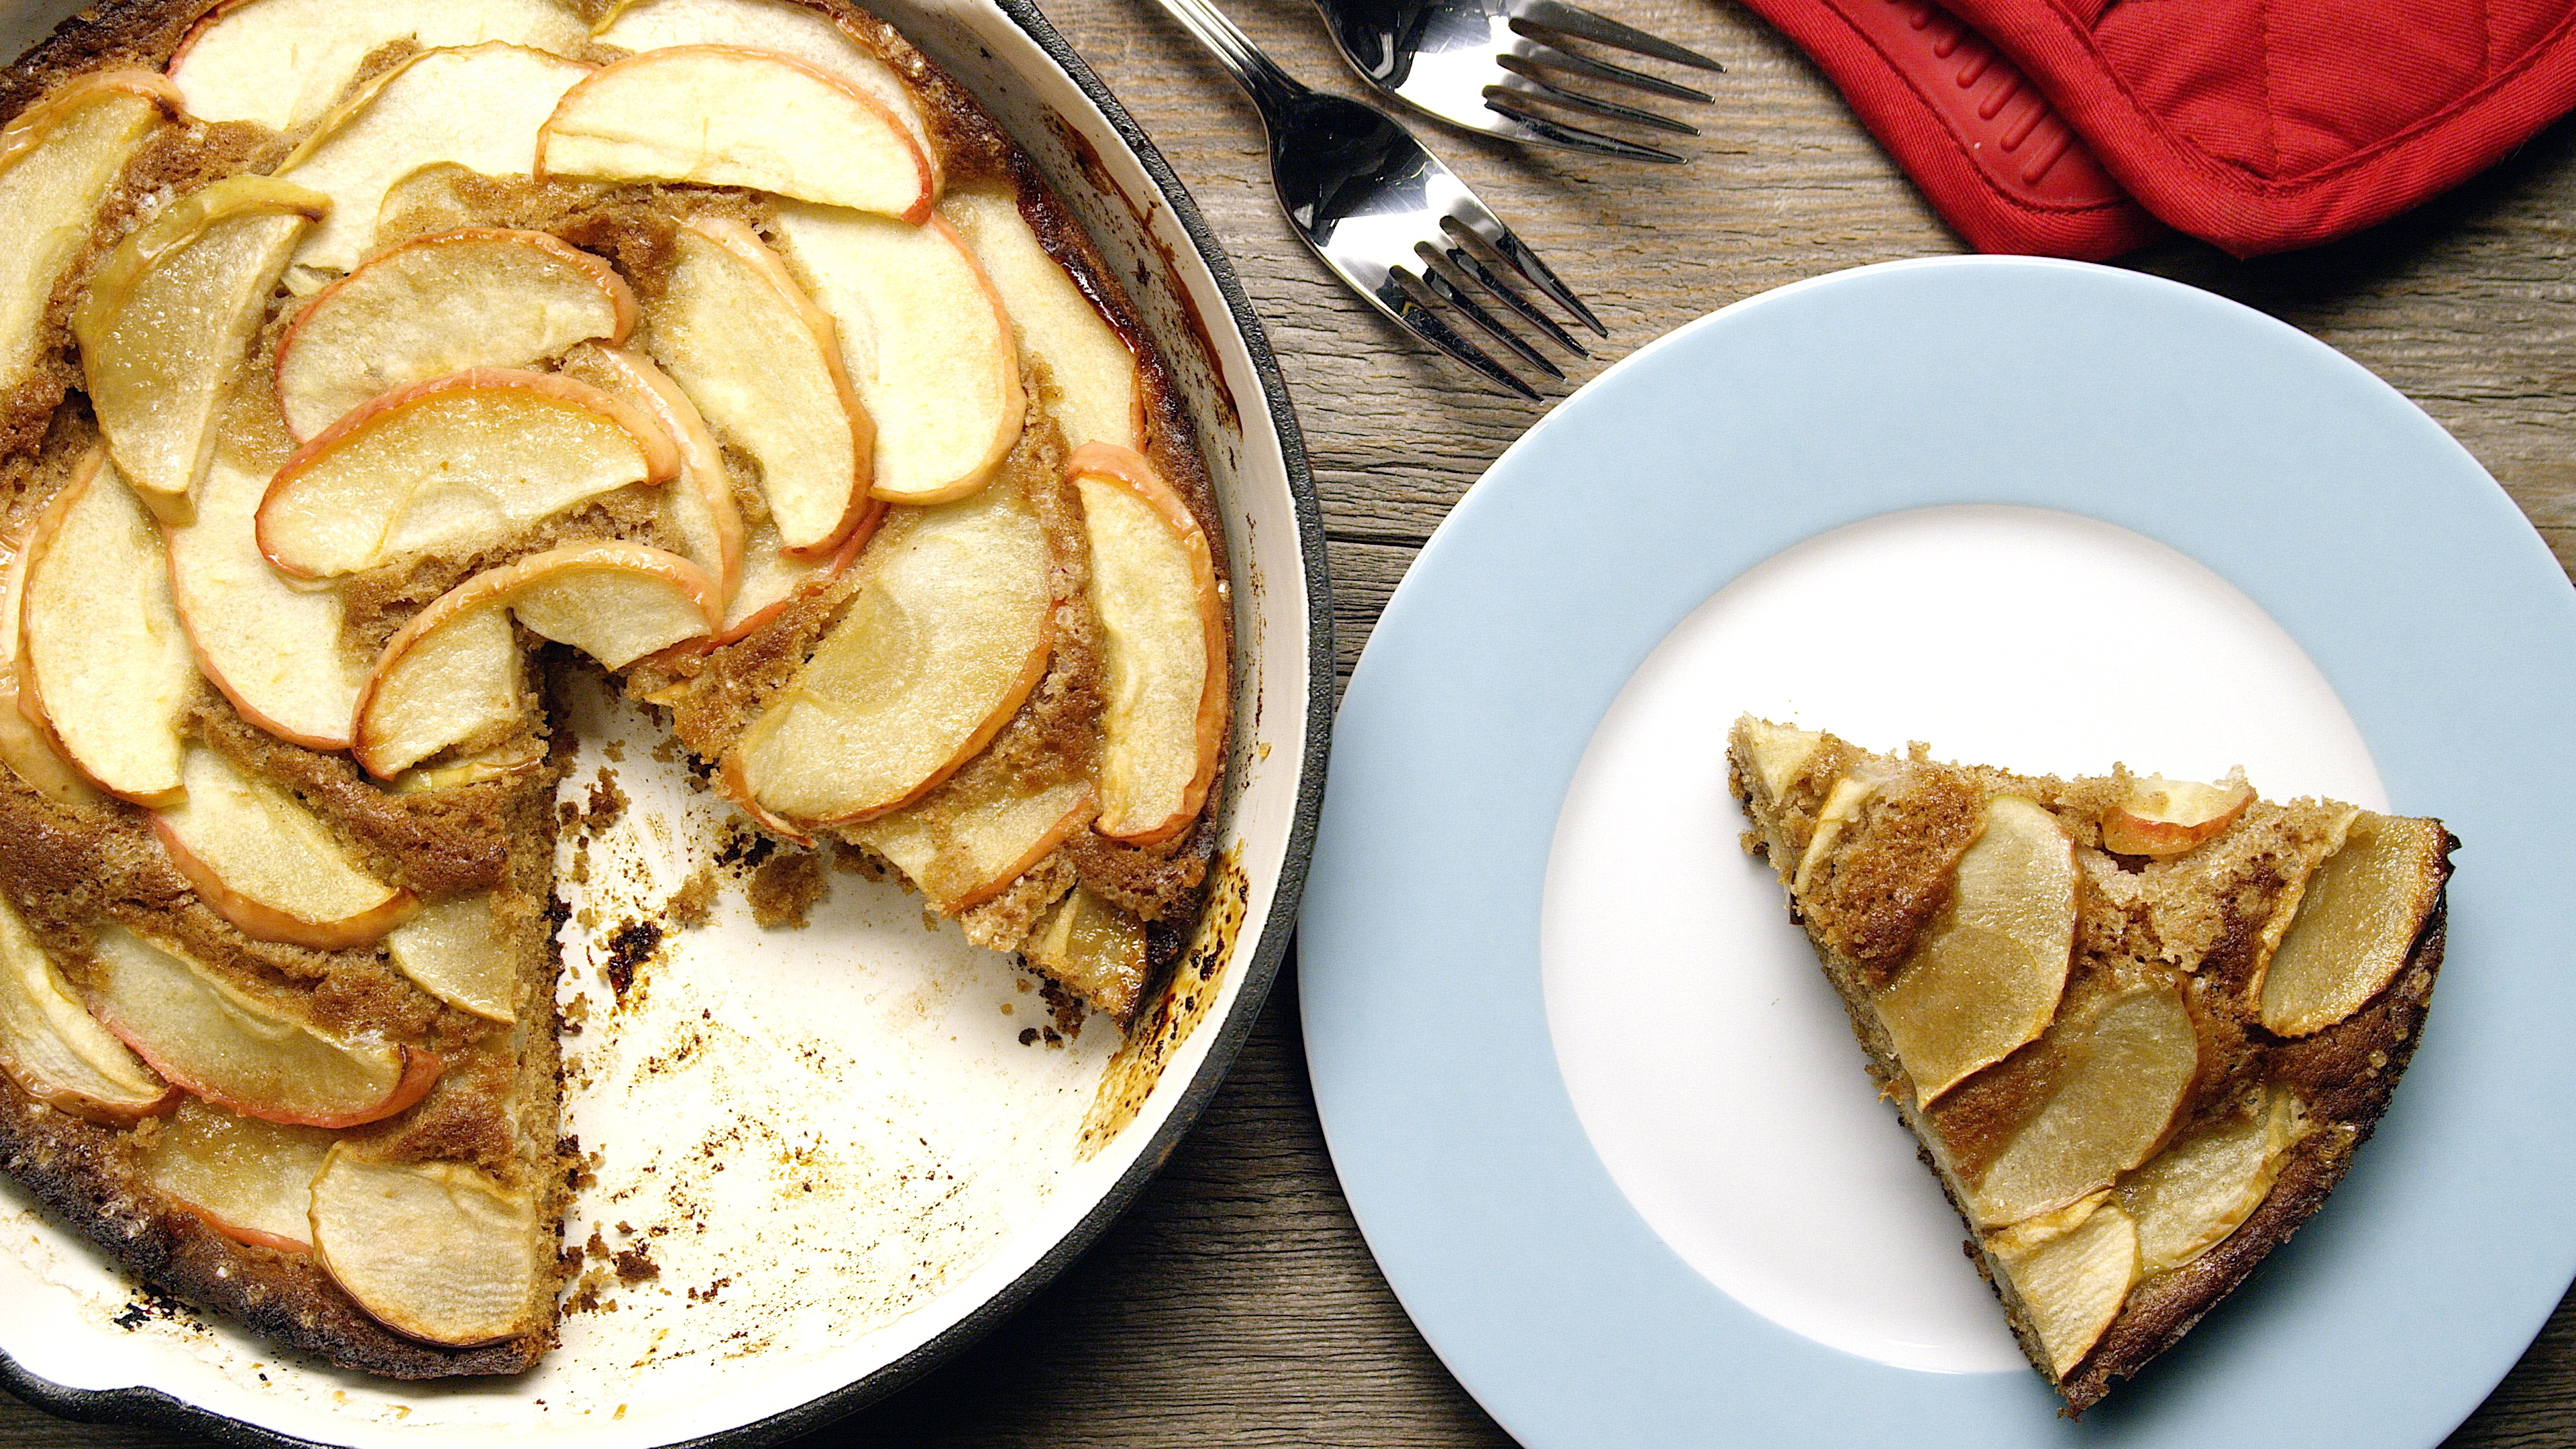 How to Make an Apple Skillet Cake